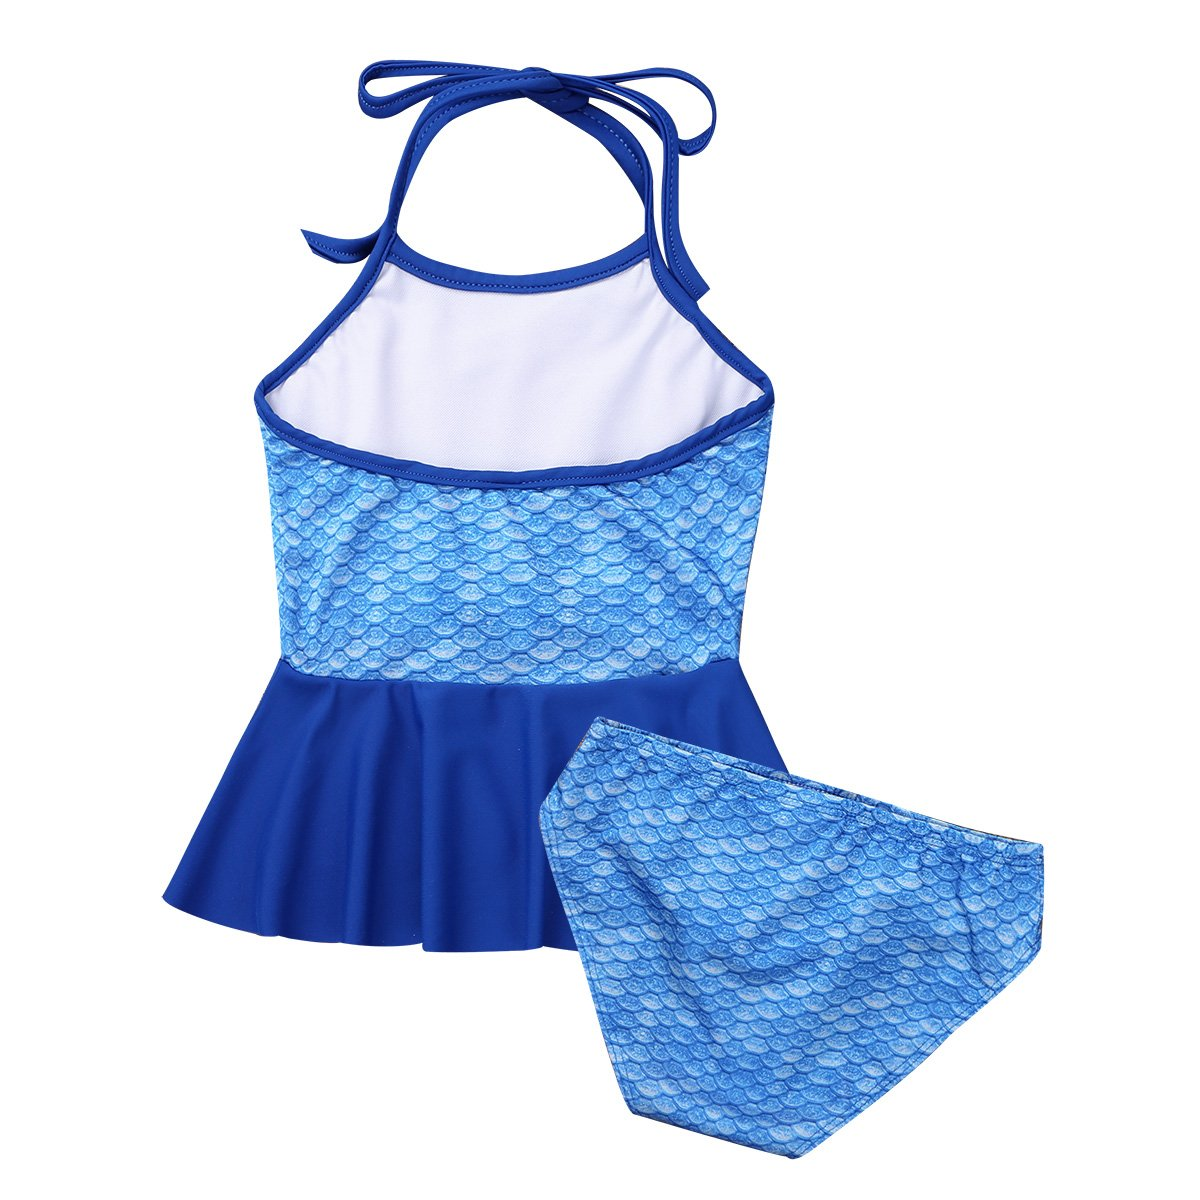 Freebily Girls Kids Two Piece Halter Tankini Swimsuit Mermaid Fish